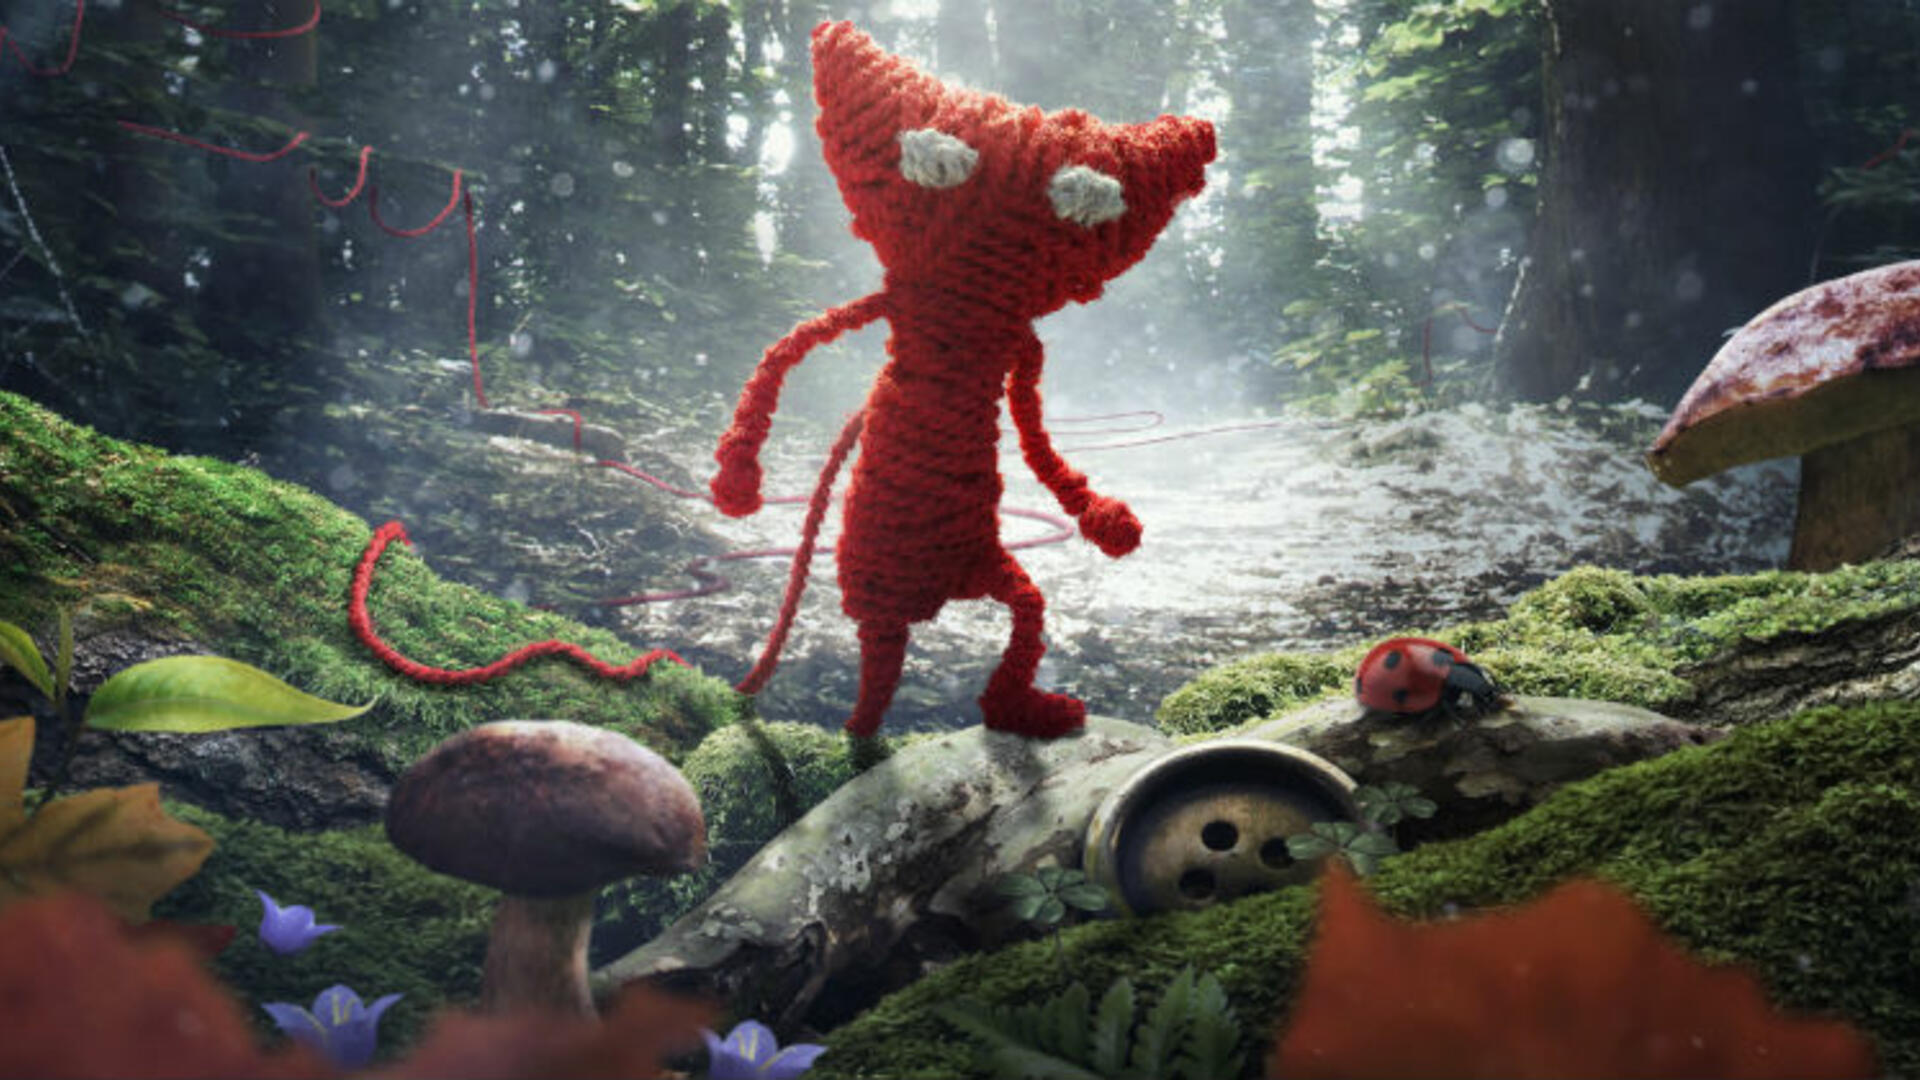 Unravel PlayStation 4 Review: A Real Yarn